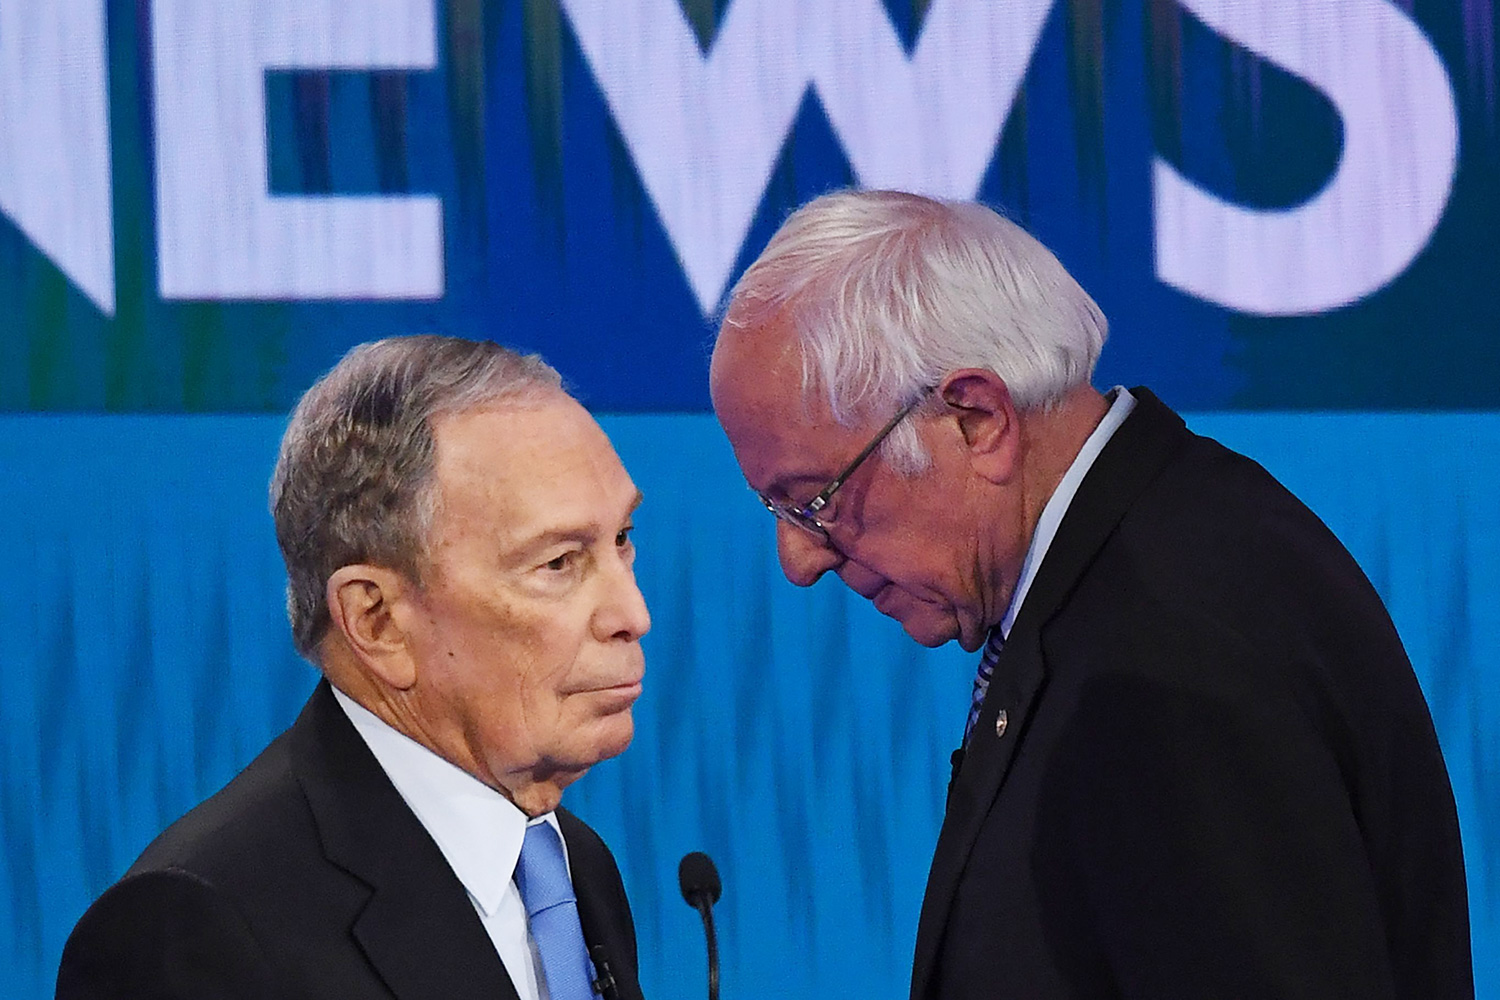 Democratic presidential hopefuls Former New York Mayor Mike Bloomberg (L) and Vermont Senator Bernie Sanders (R) speak during a break in the ninth Democratic primary debate